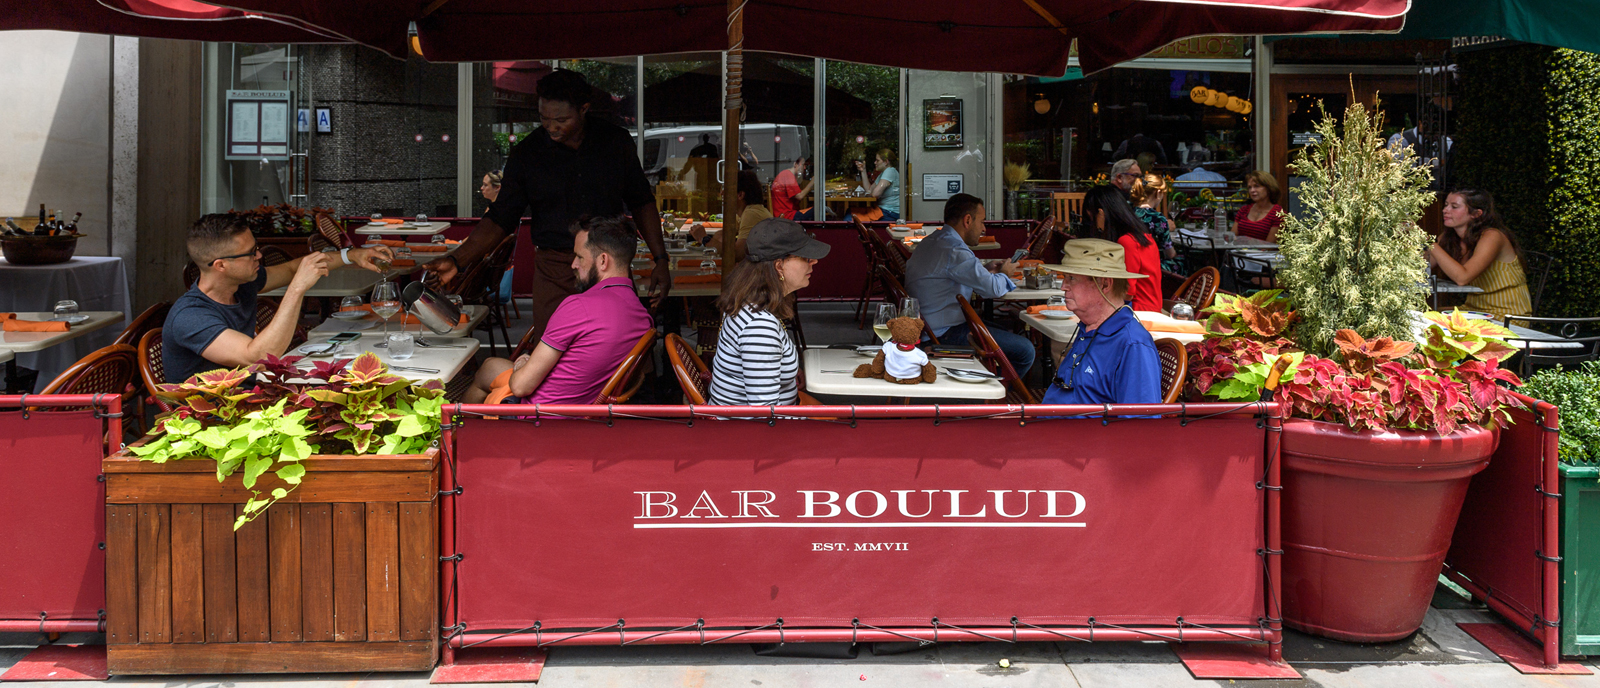 a busy sidewalk cafe in the summertime at Bar Boulud on Broadway